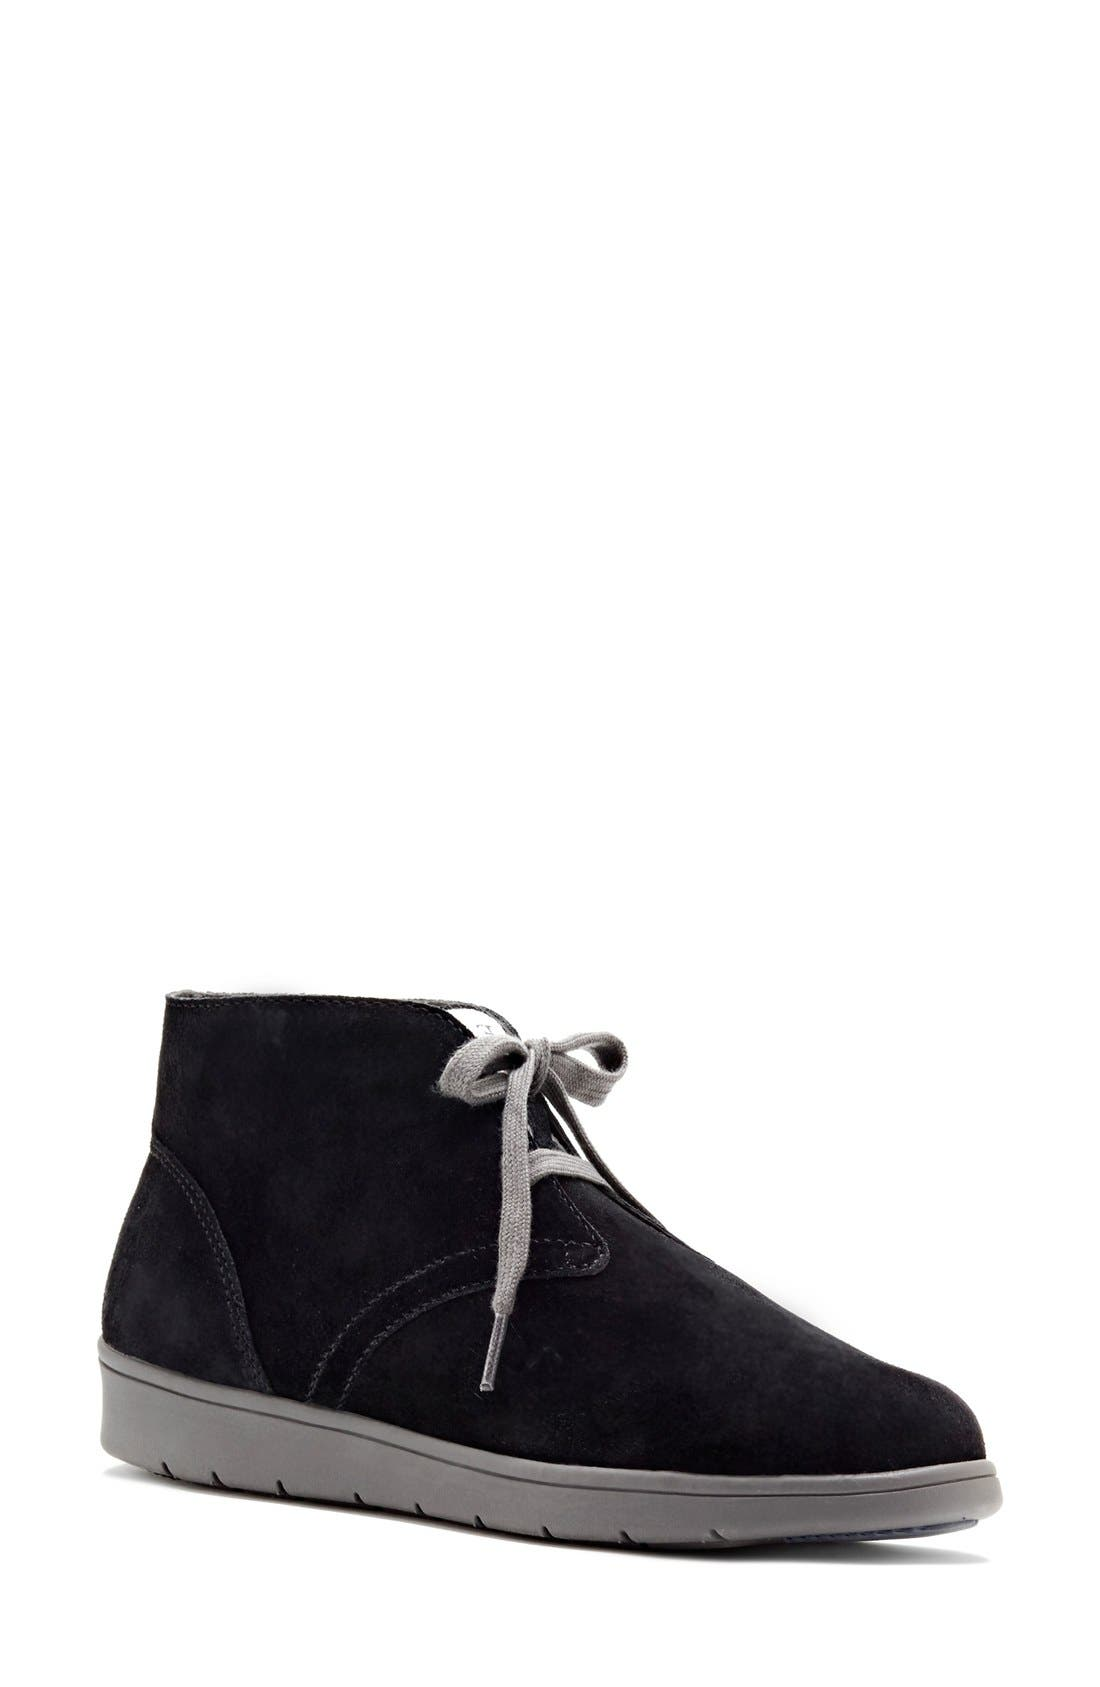 Alternate Image 1 Selected - ED Ellen DeGeneres 'Anapamu' Chukka Boot (Women)